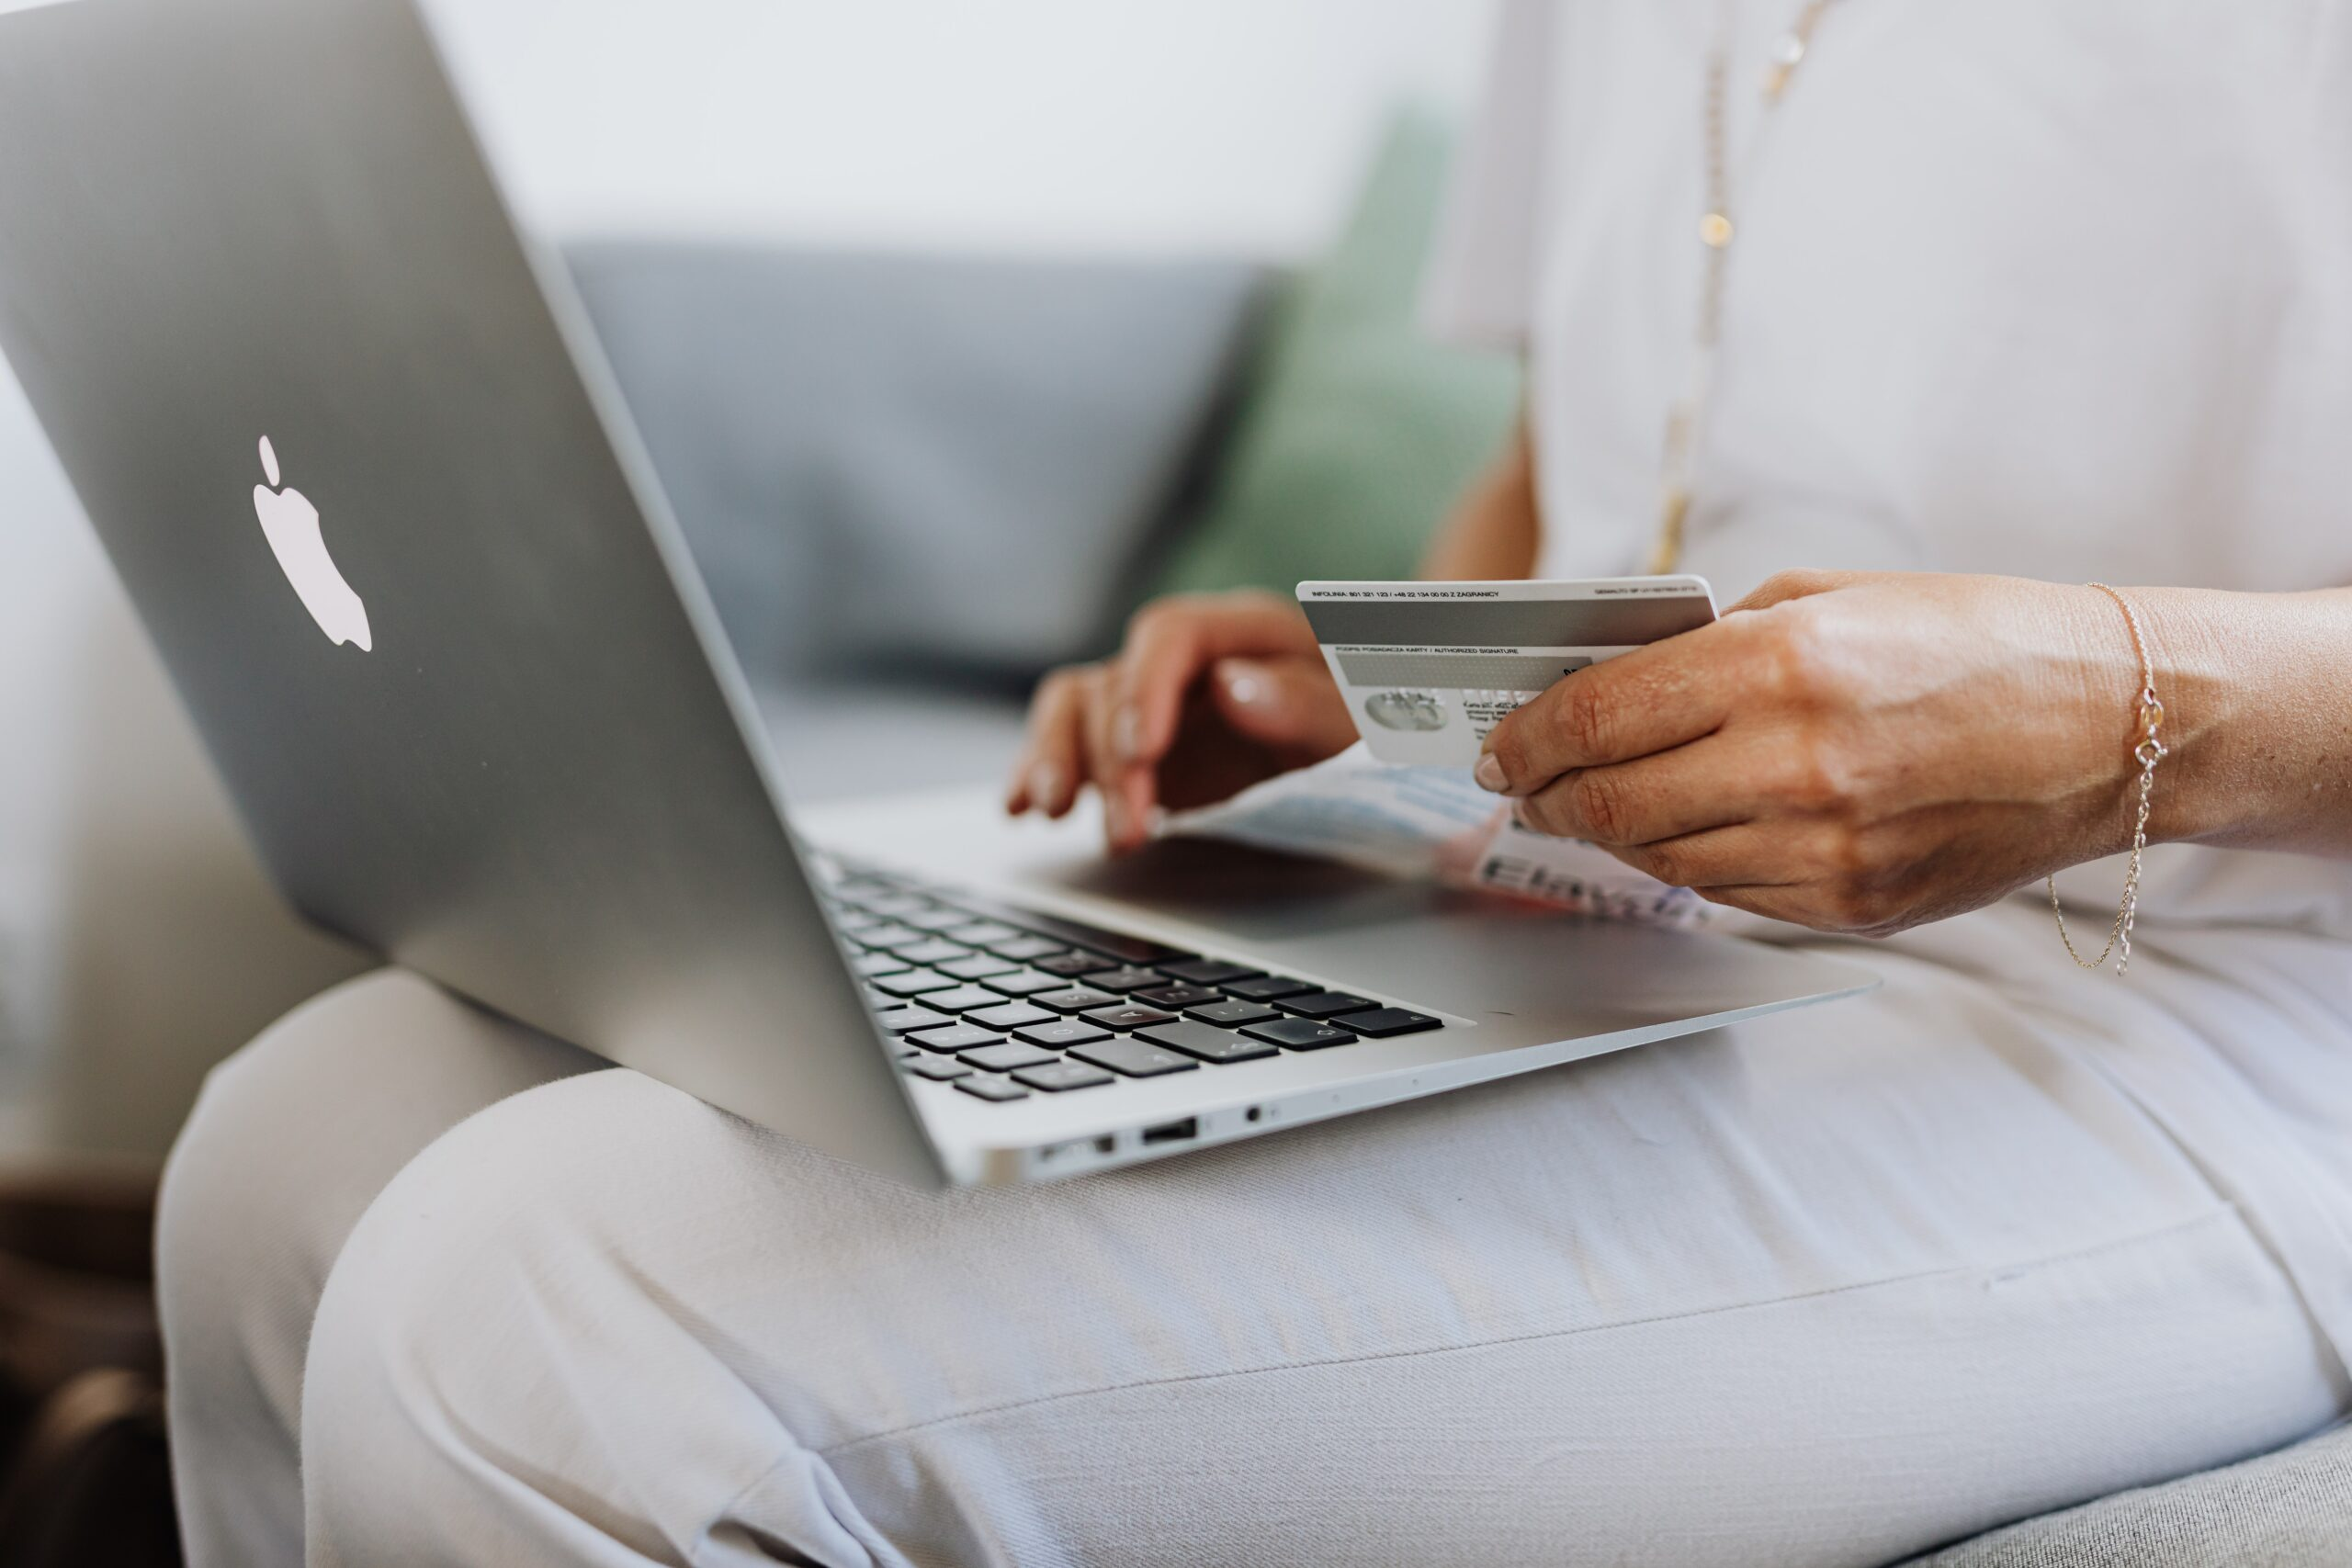 woman shopping online helps funds for cancer research